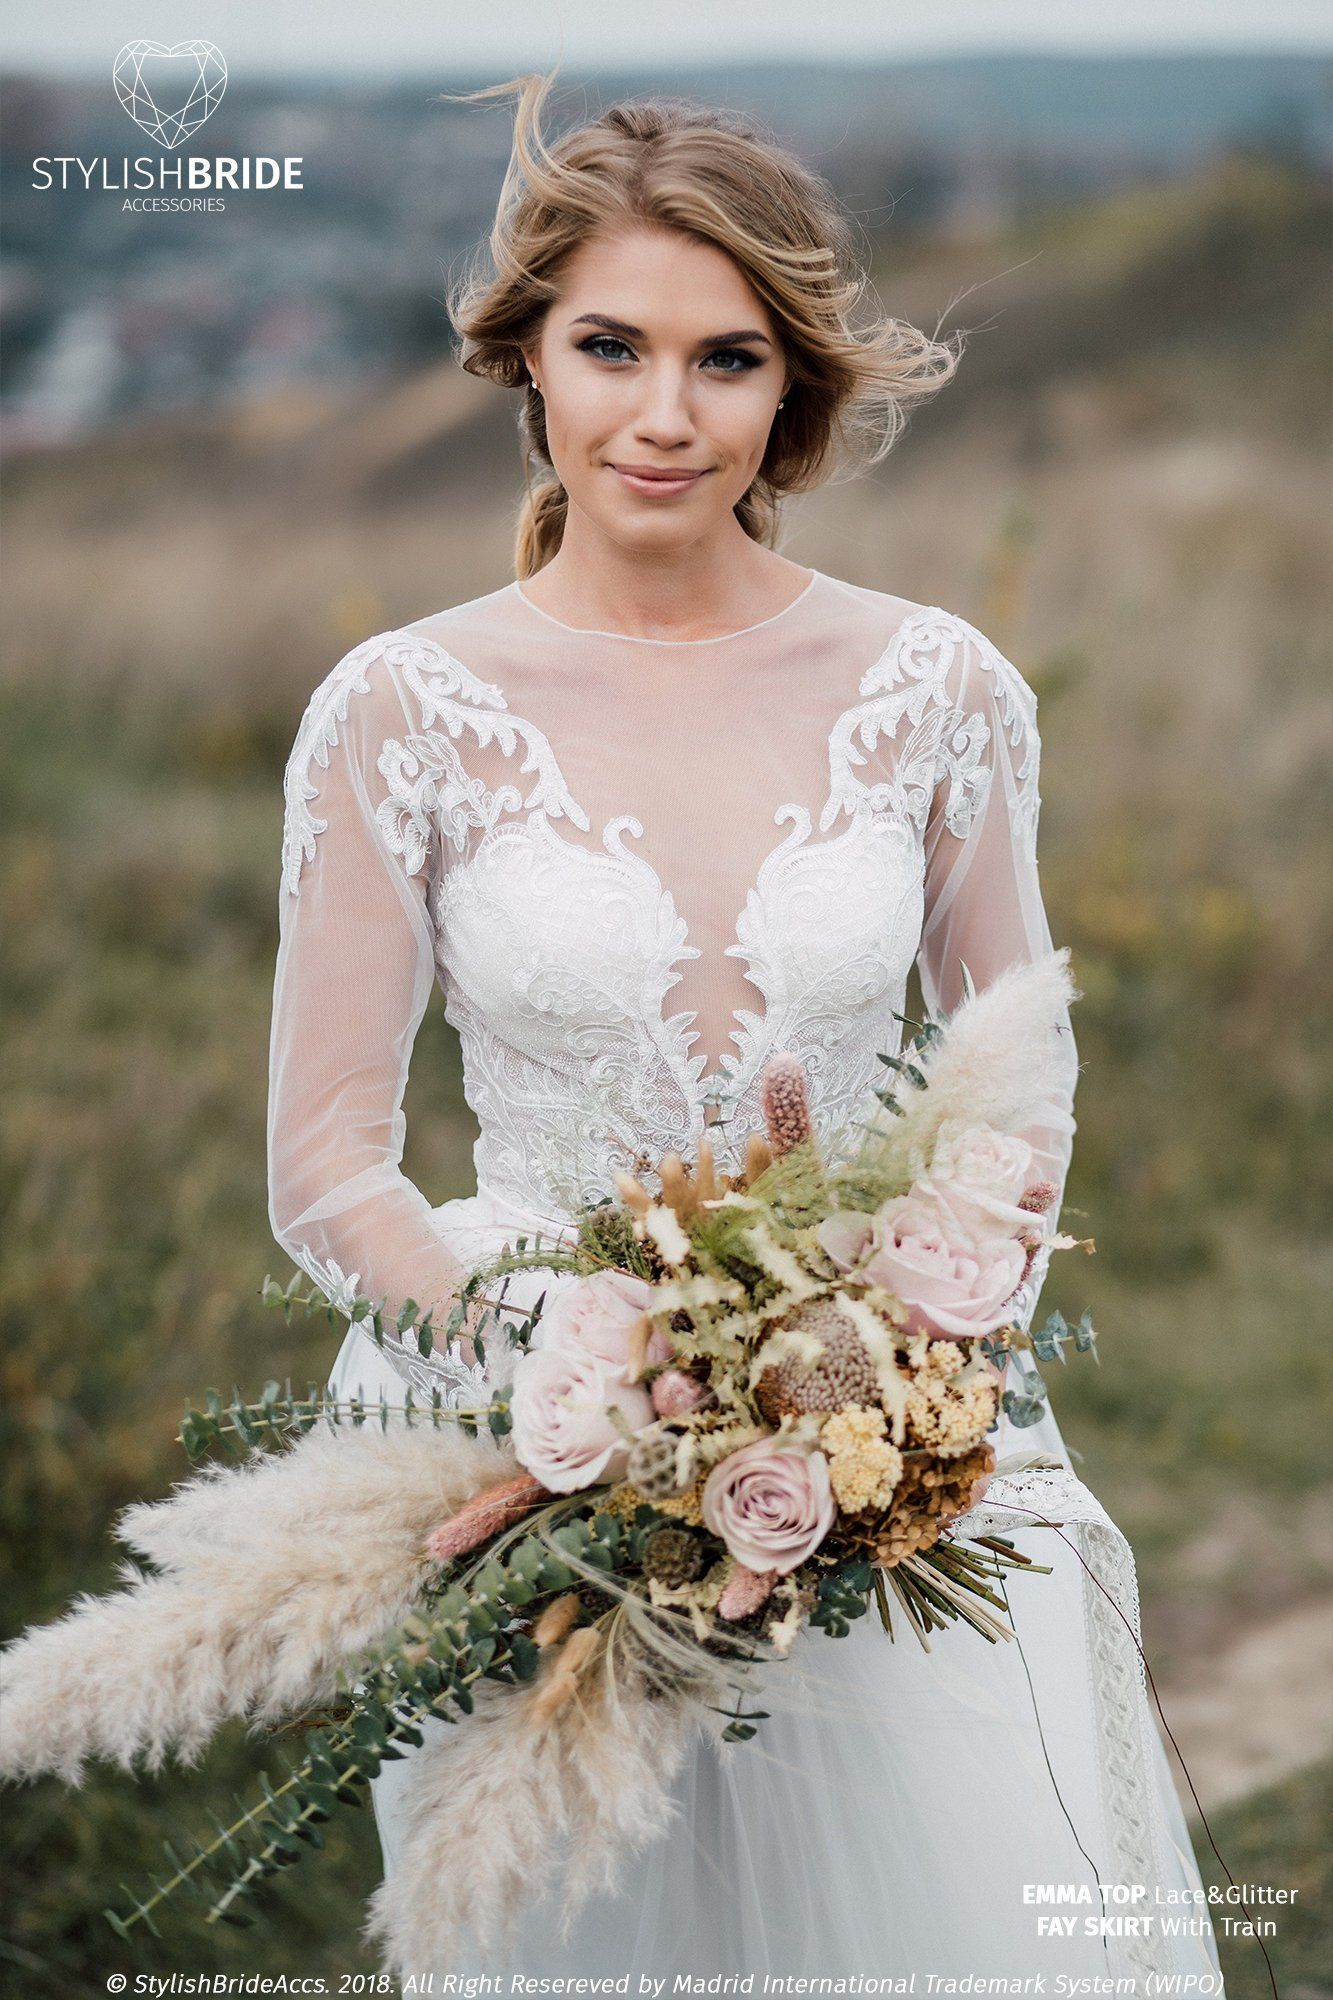 Emma Glitter Wedding Top, Glitter and Lace Crop Top with